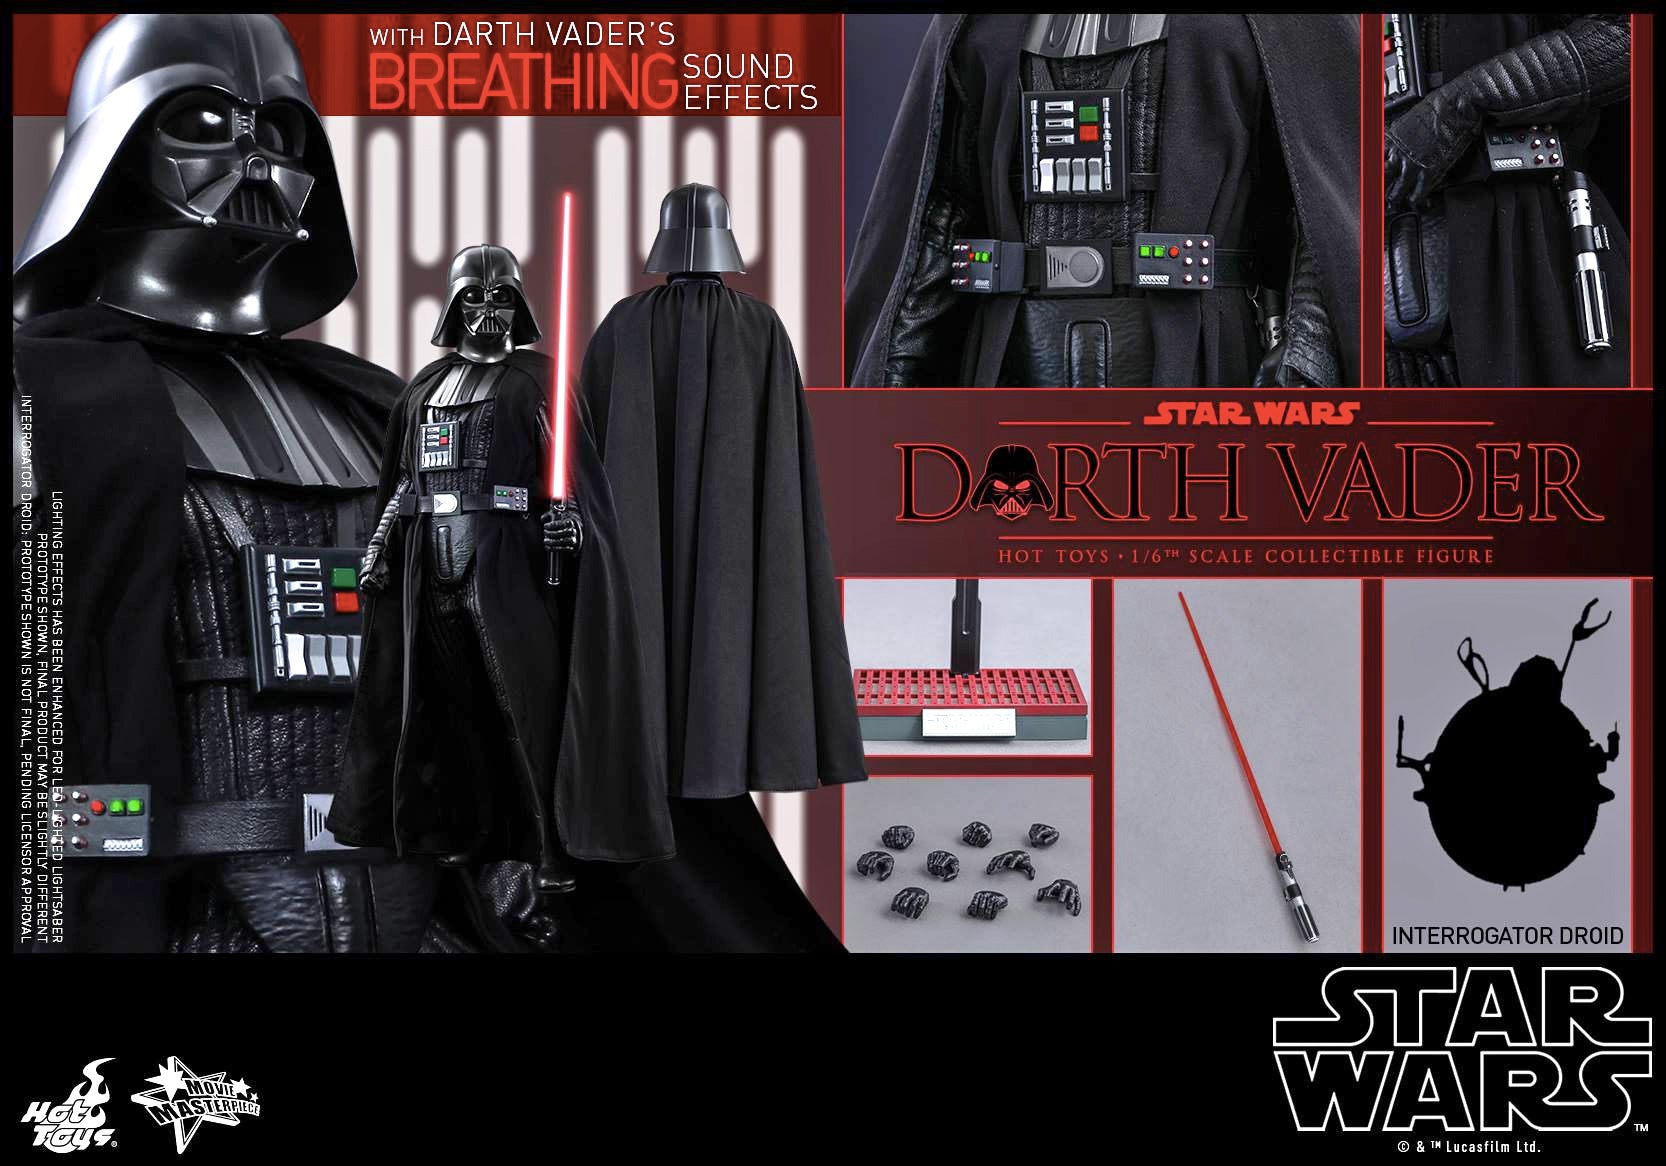 The Definitive Darth Vader Figure Even Has His Iconic Breathing Sounds